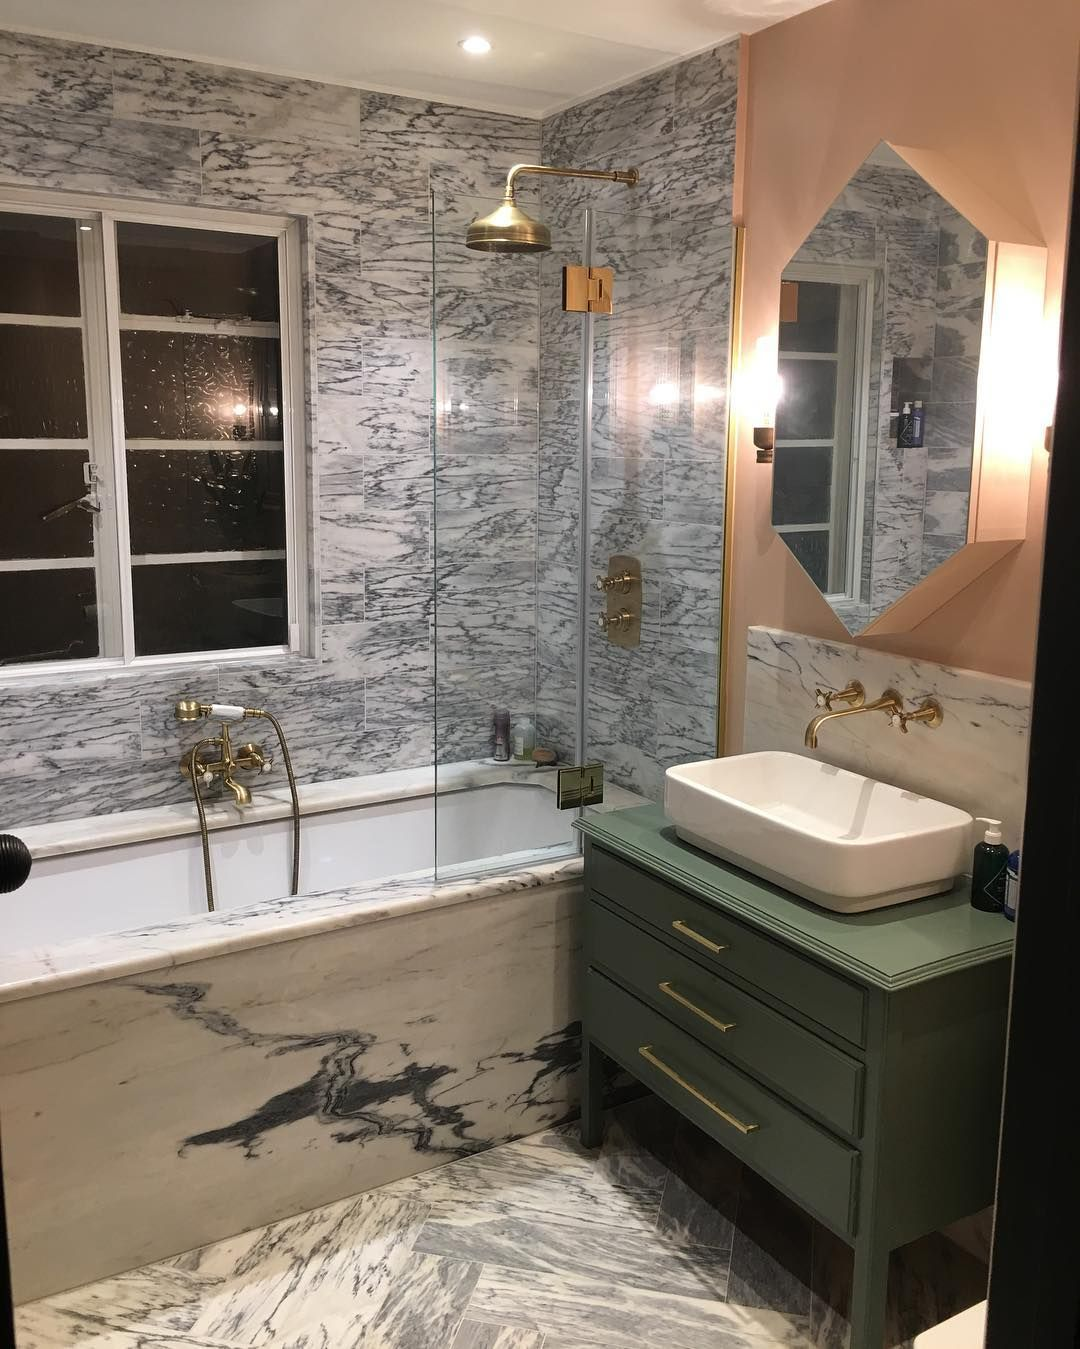 Hampstead Project S New Bathroom Build Tiling Marble Ofdevizes Calacatta Tigre Refurbishment Renovation